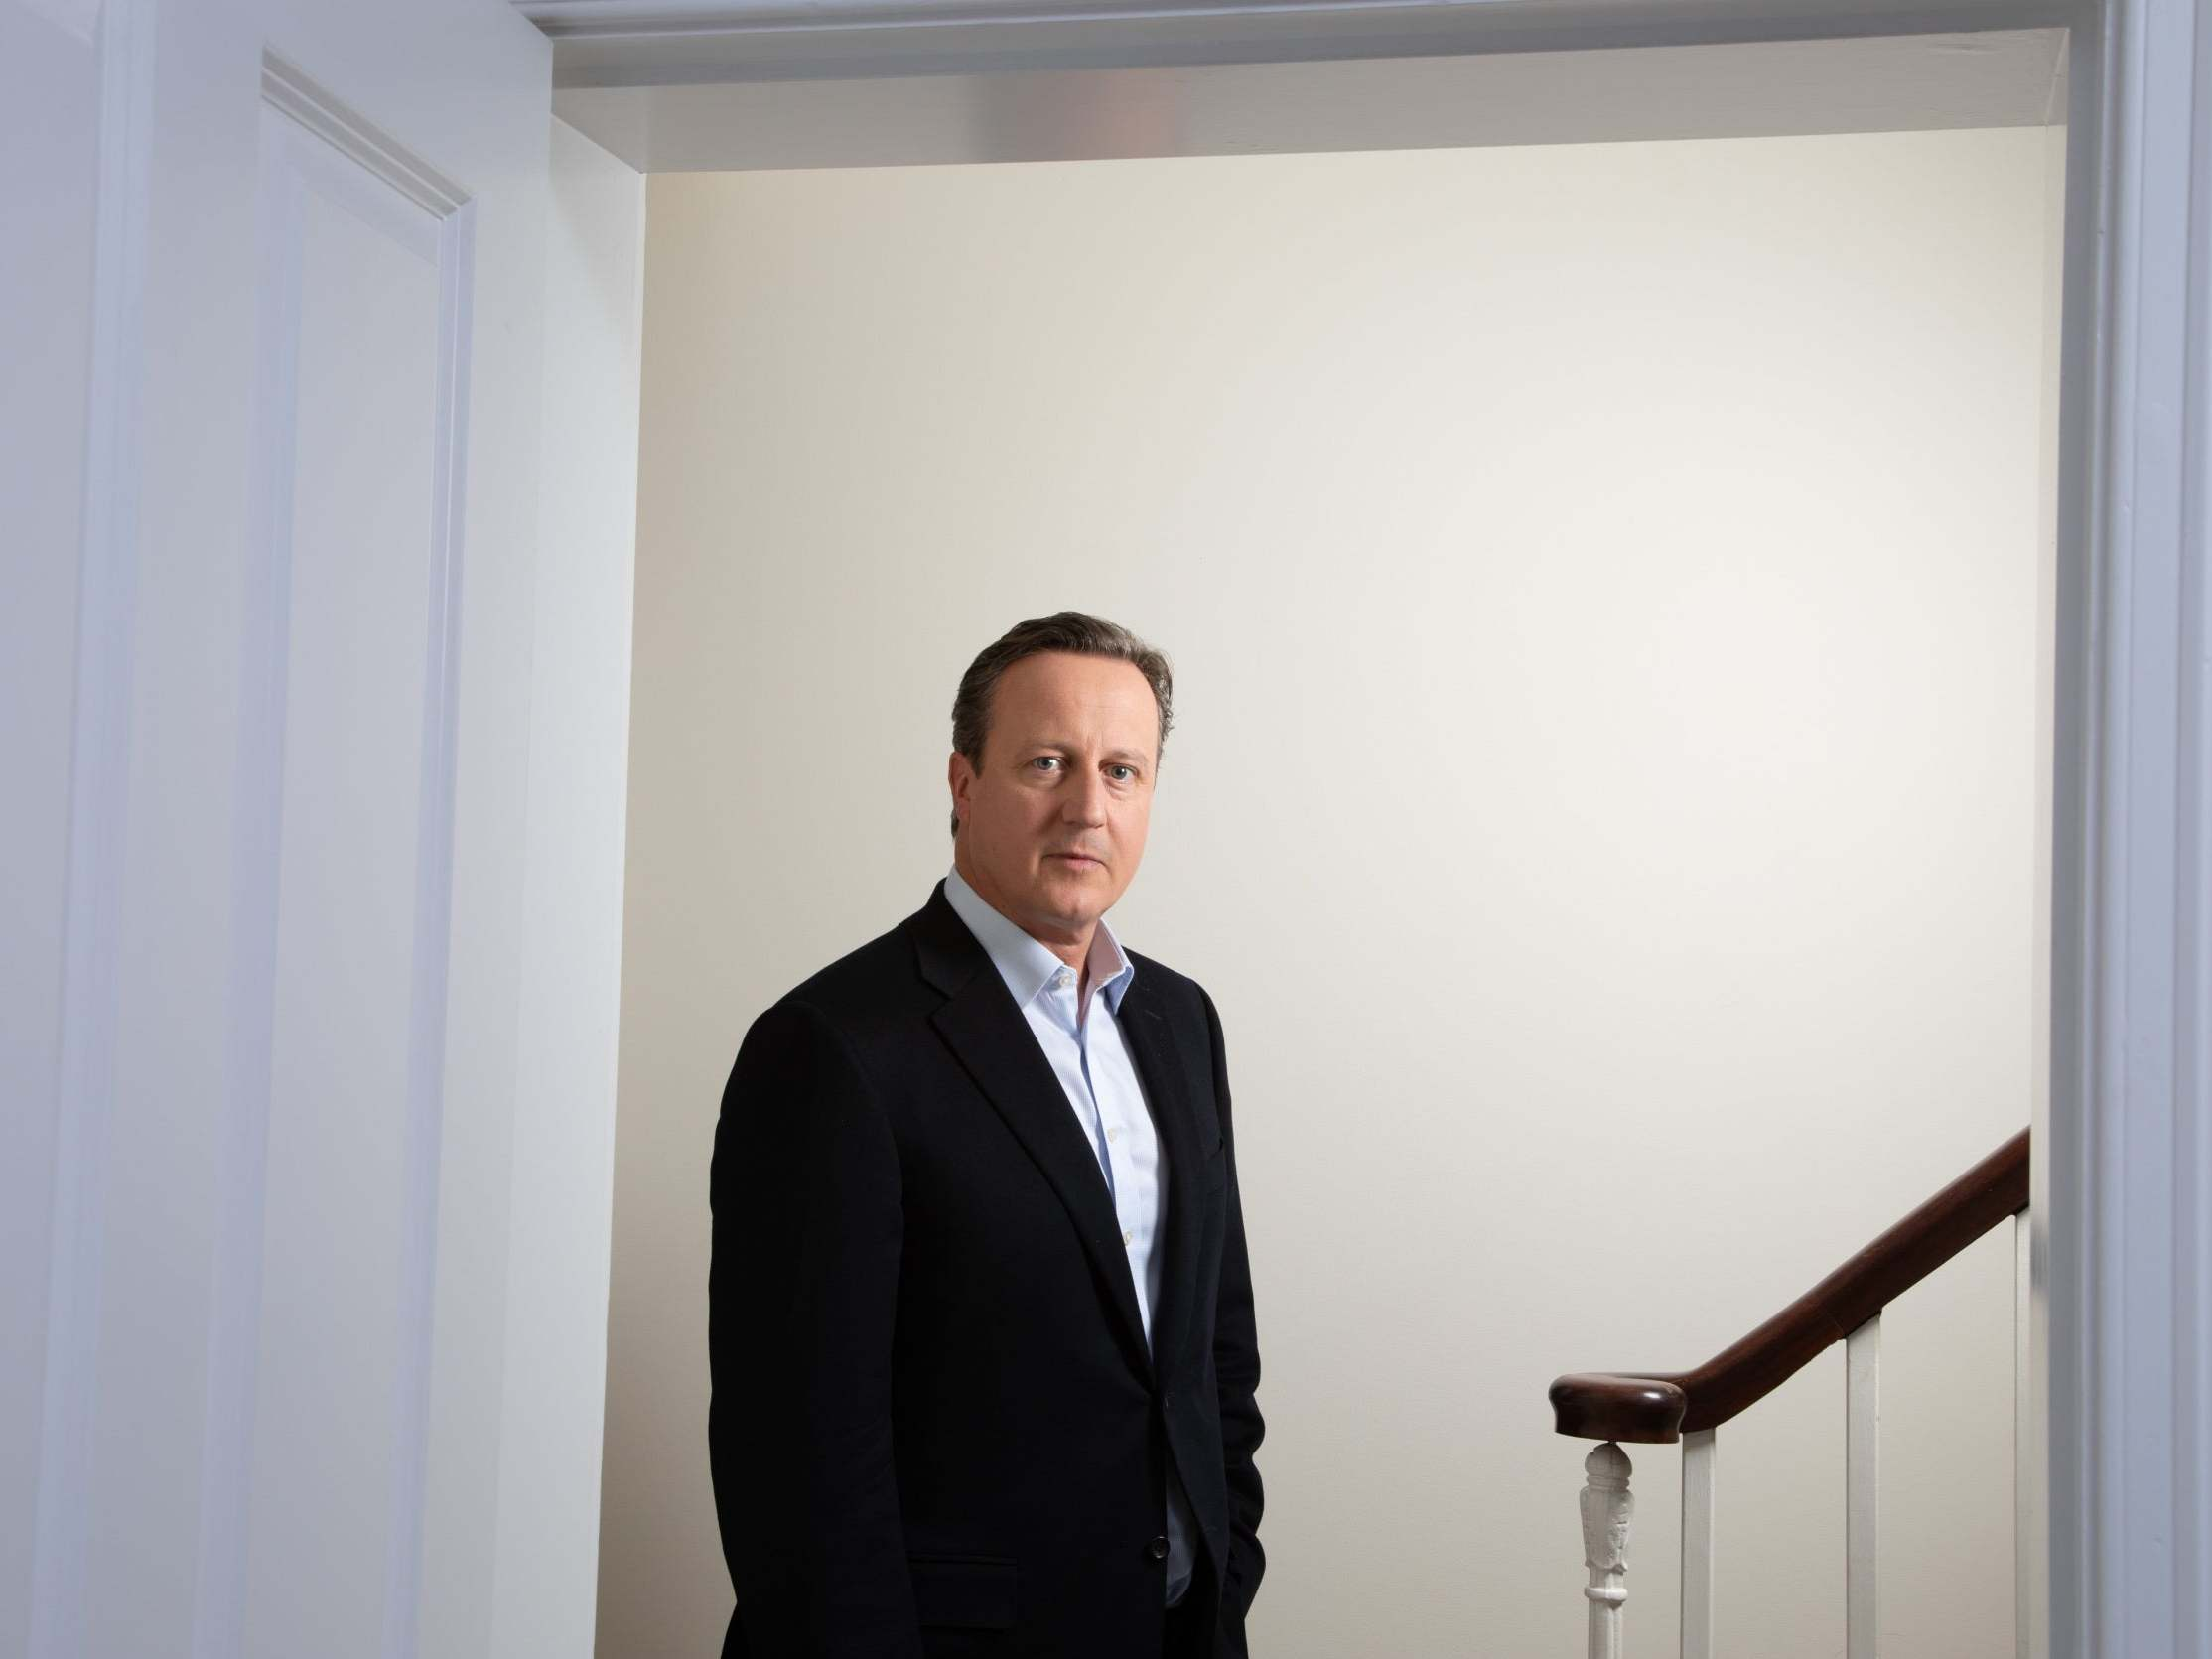 On Eve Of British Pm Camerons Visit >> David Cameron Failed Because He Stuck To What He Believed In